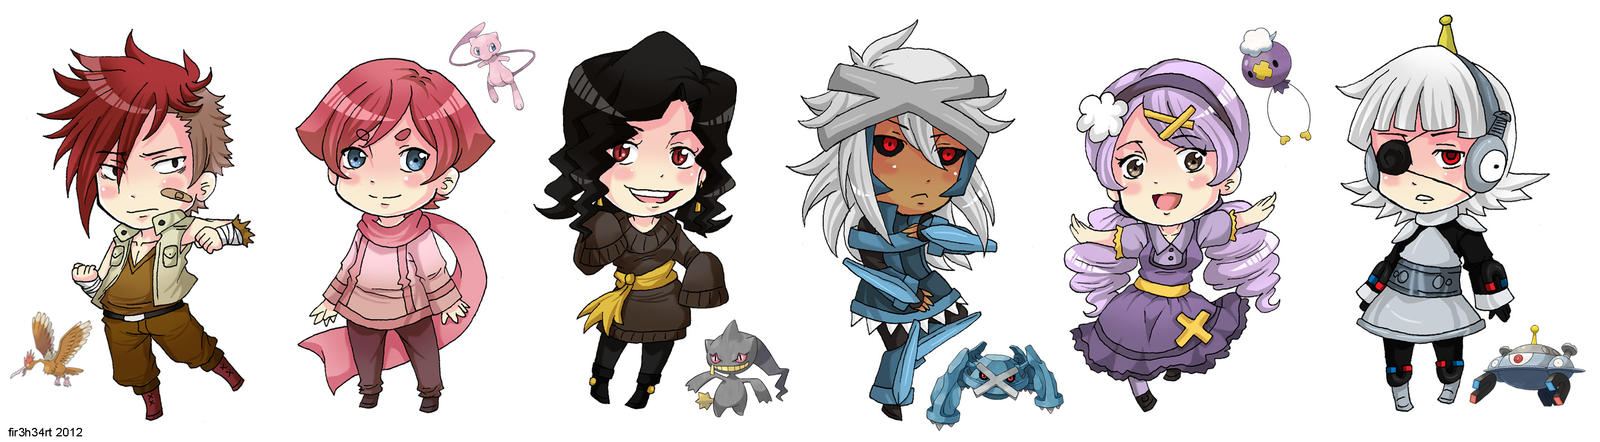 PKMN: Random Gijinka Chibis by fir3h34rt